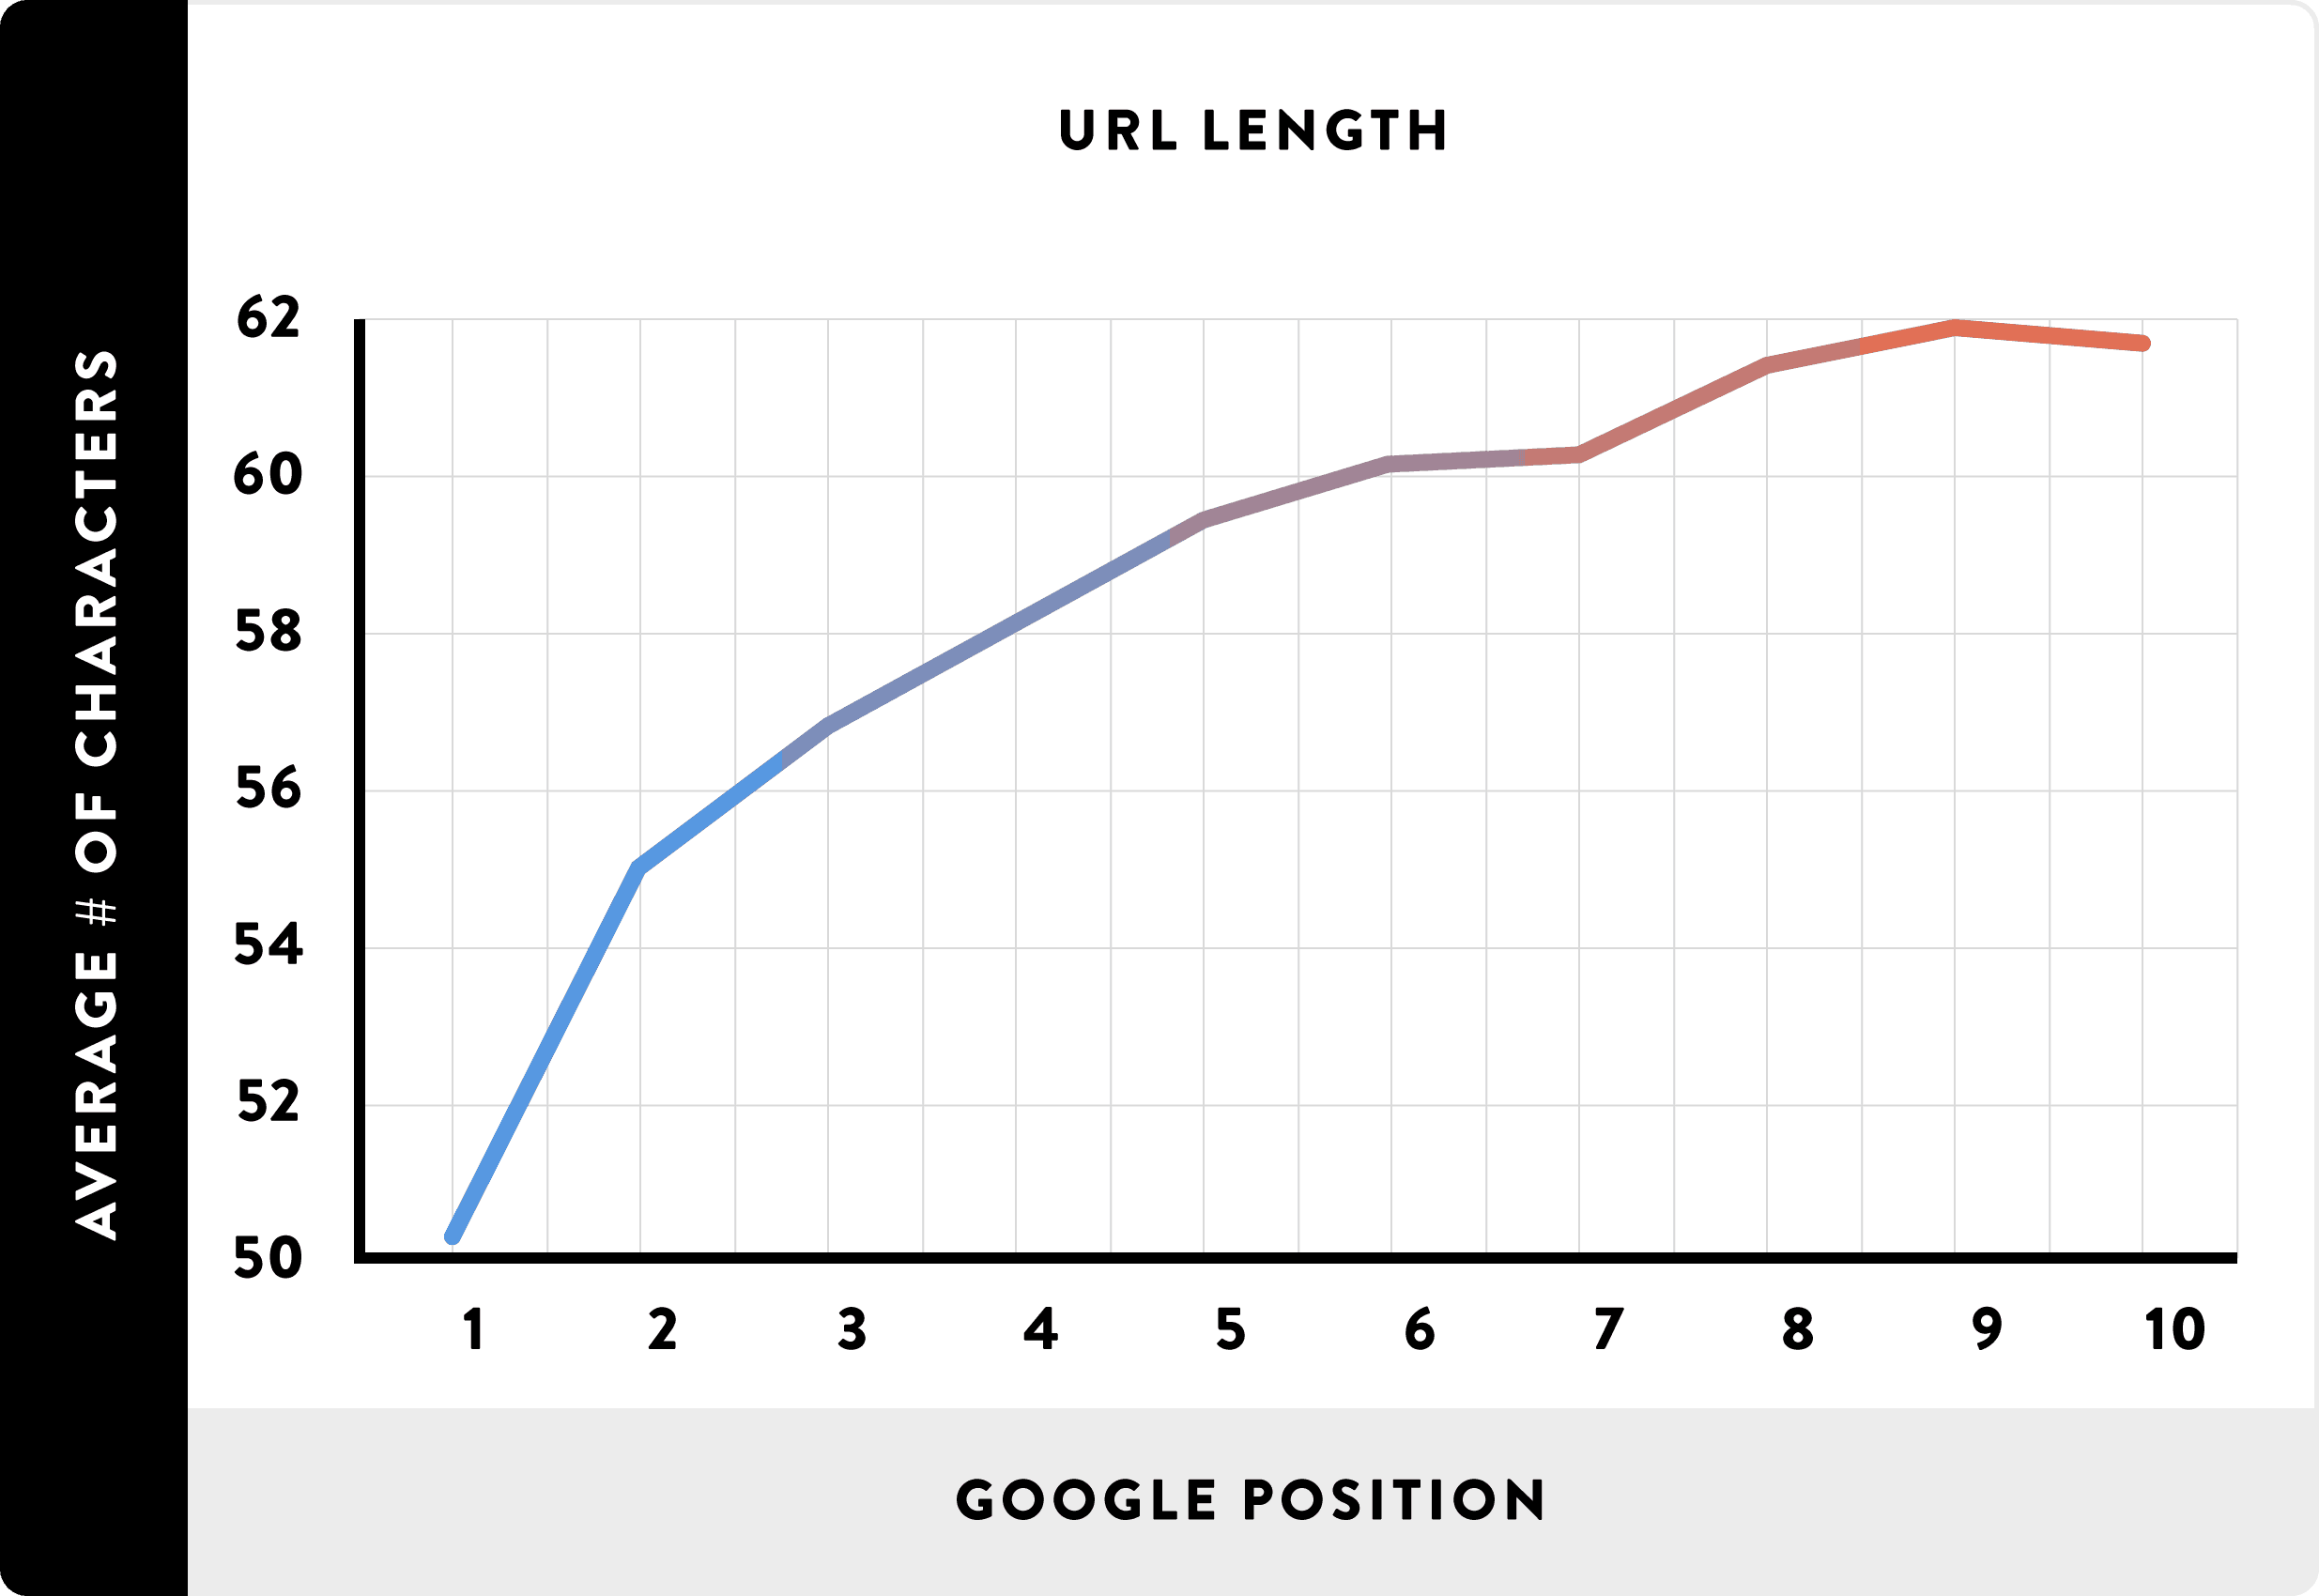 URL Length and Rankings